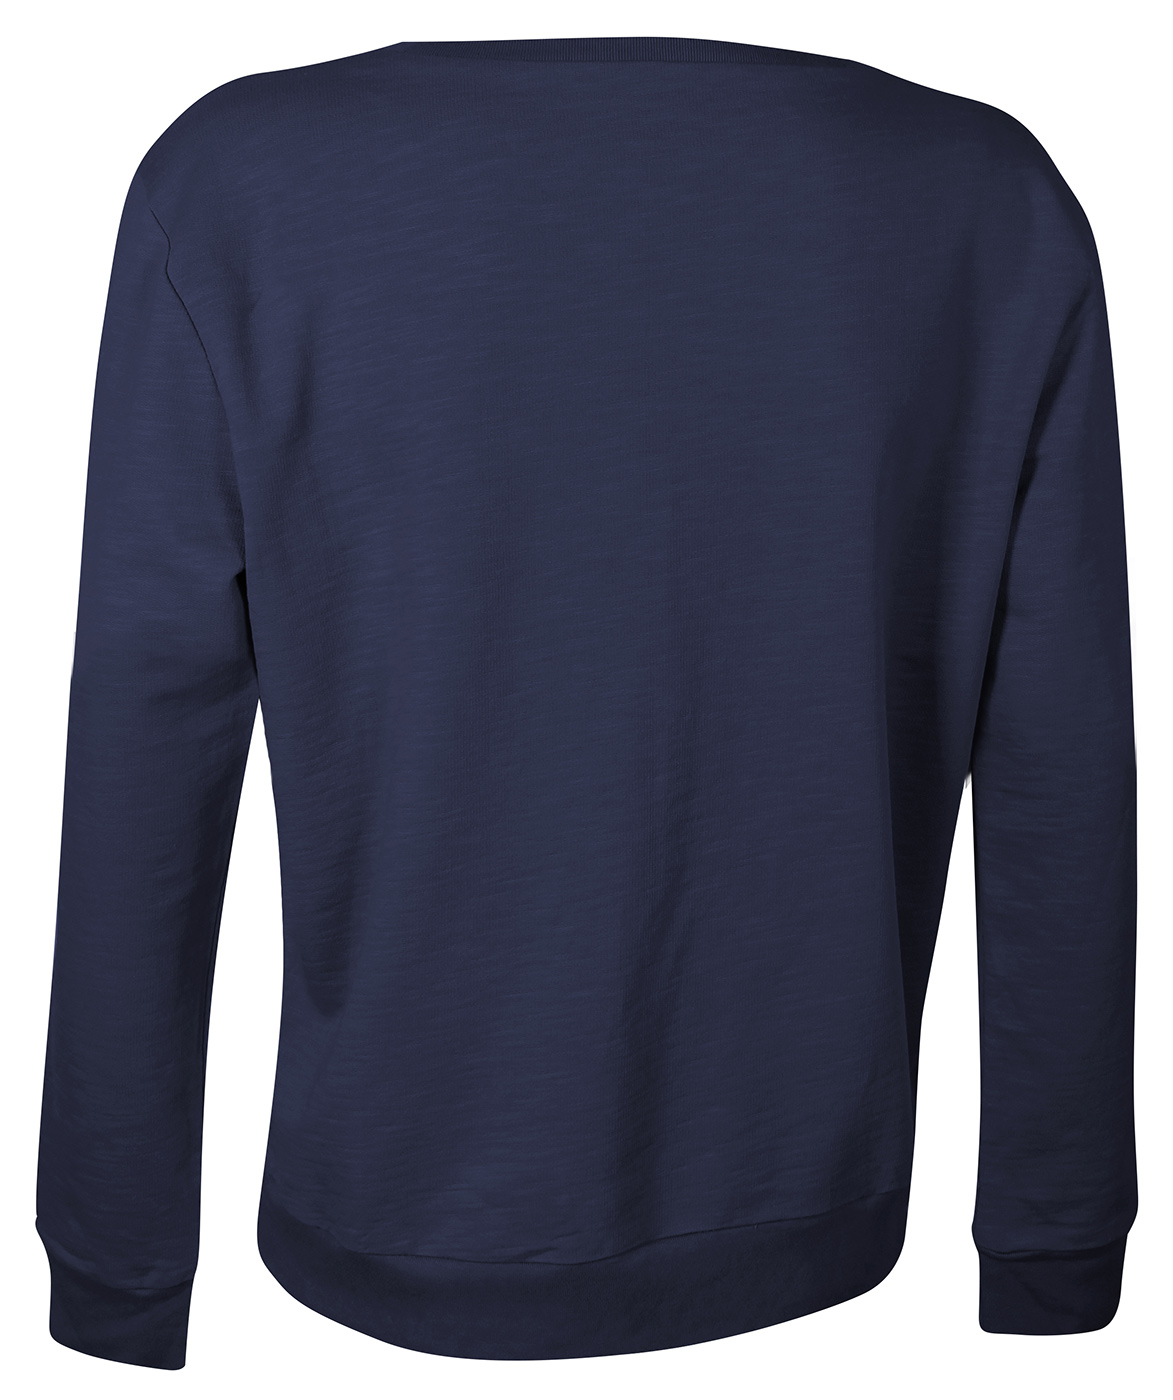 "Sweatshirt ""Yoga"", navy"